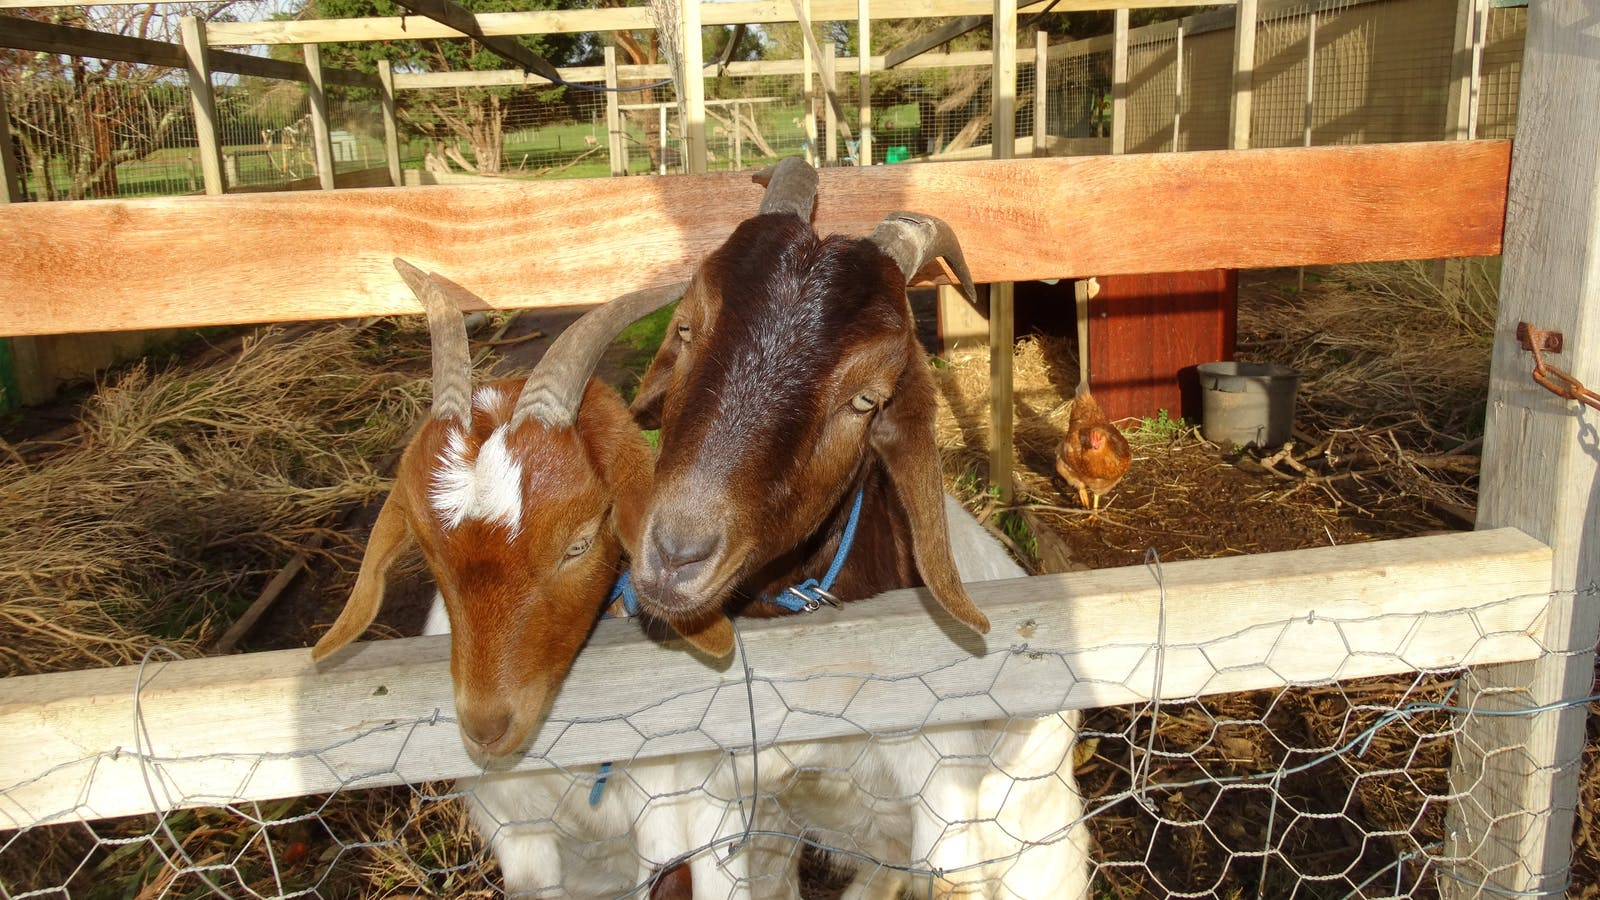 Meet Billie and Bertie the house goats